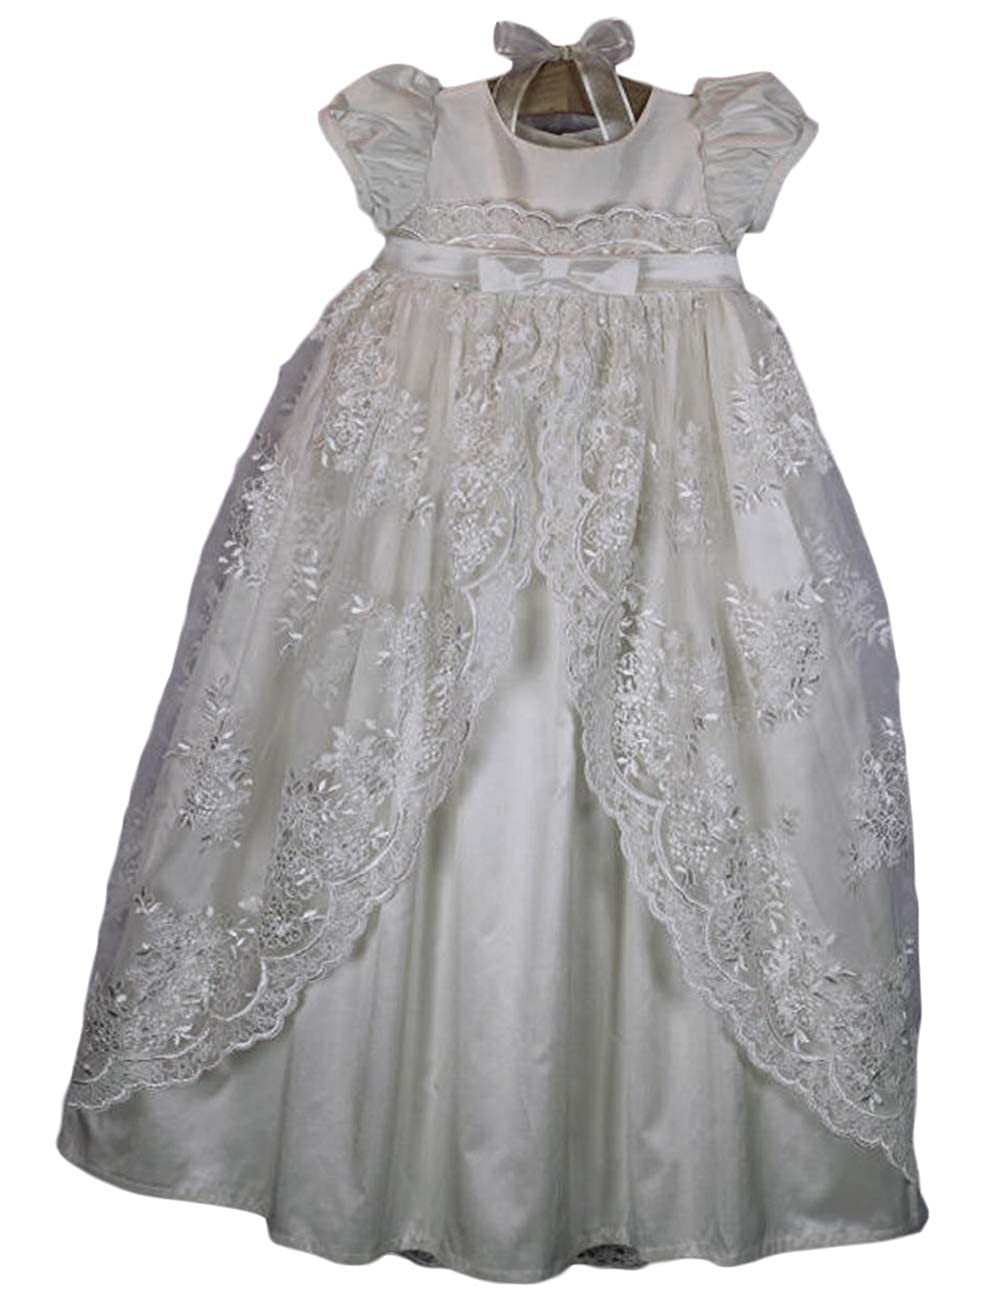 Faithclover Christening Gowns Girls Long Lace Classic Special Occasion Dresses with Bonnet